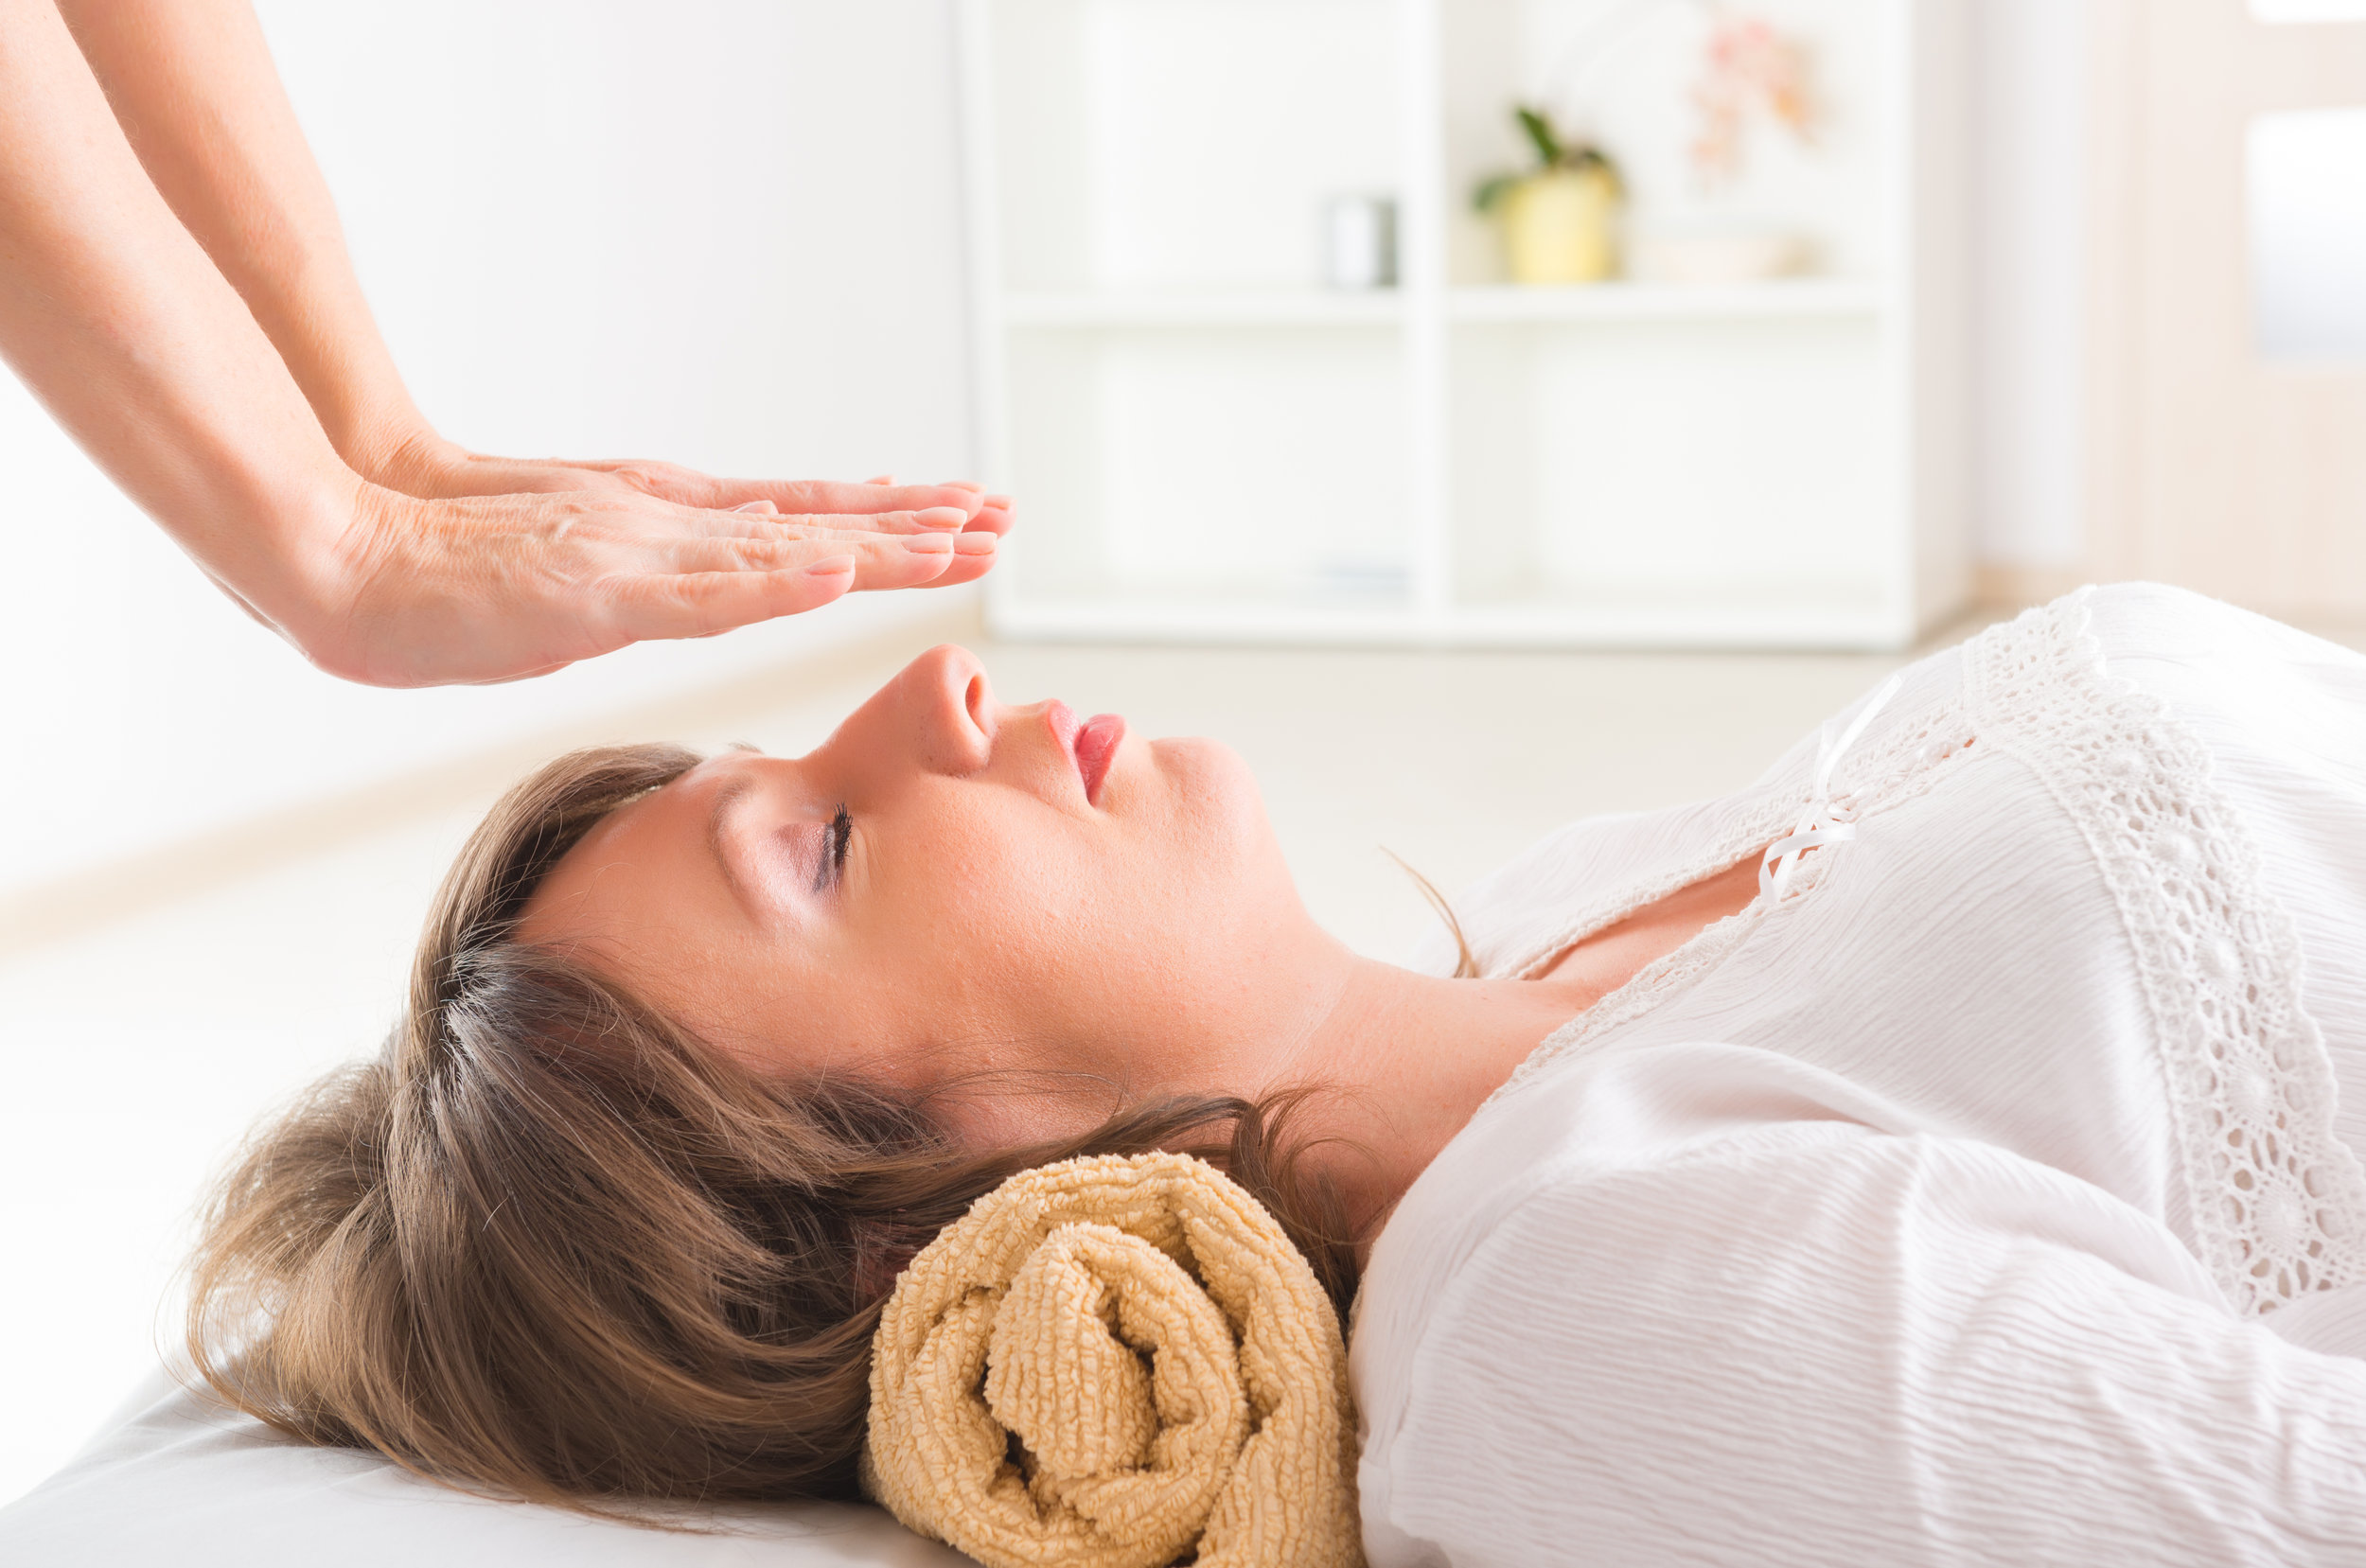 Cosmic Love Reiki Healing £35 30 mins - Urban Oasis specialises in Reiki healing as our Spa Director is a reiki master. Our attuned therapists work gently over and on the body using natural healing energies to ease your body, mind and soul into a restful state and stimulate your own healing energies. If you've never experienced reiki we highly recommend that you try it as the results can be profound and the experience deeply relaxing.